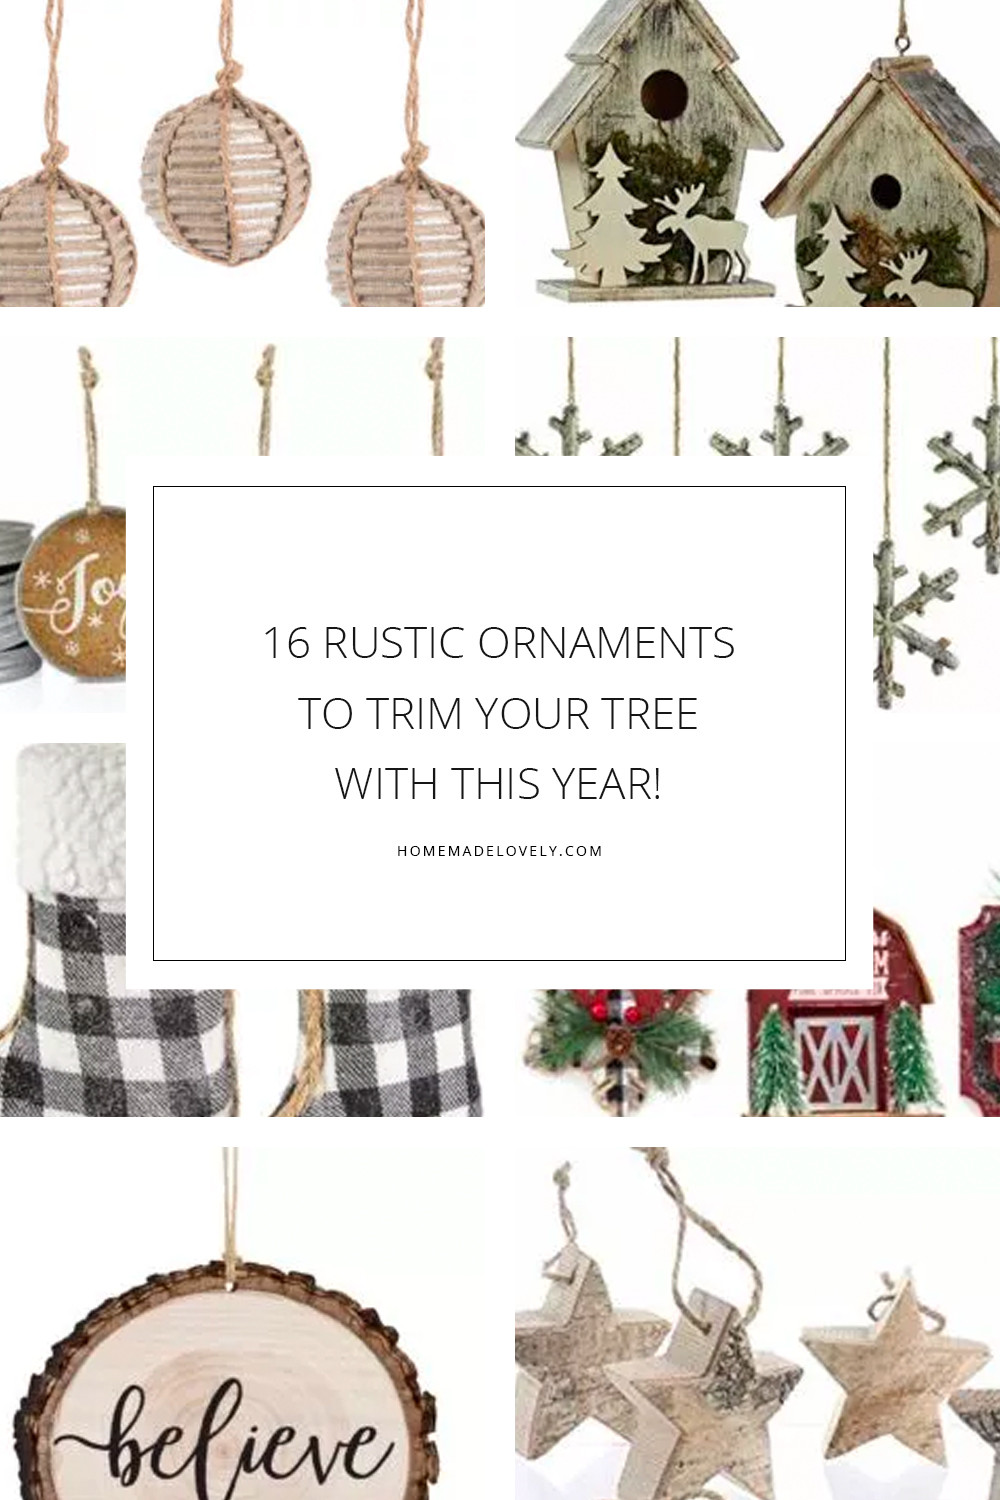 16 Rustic Christmas Ornaments